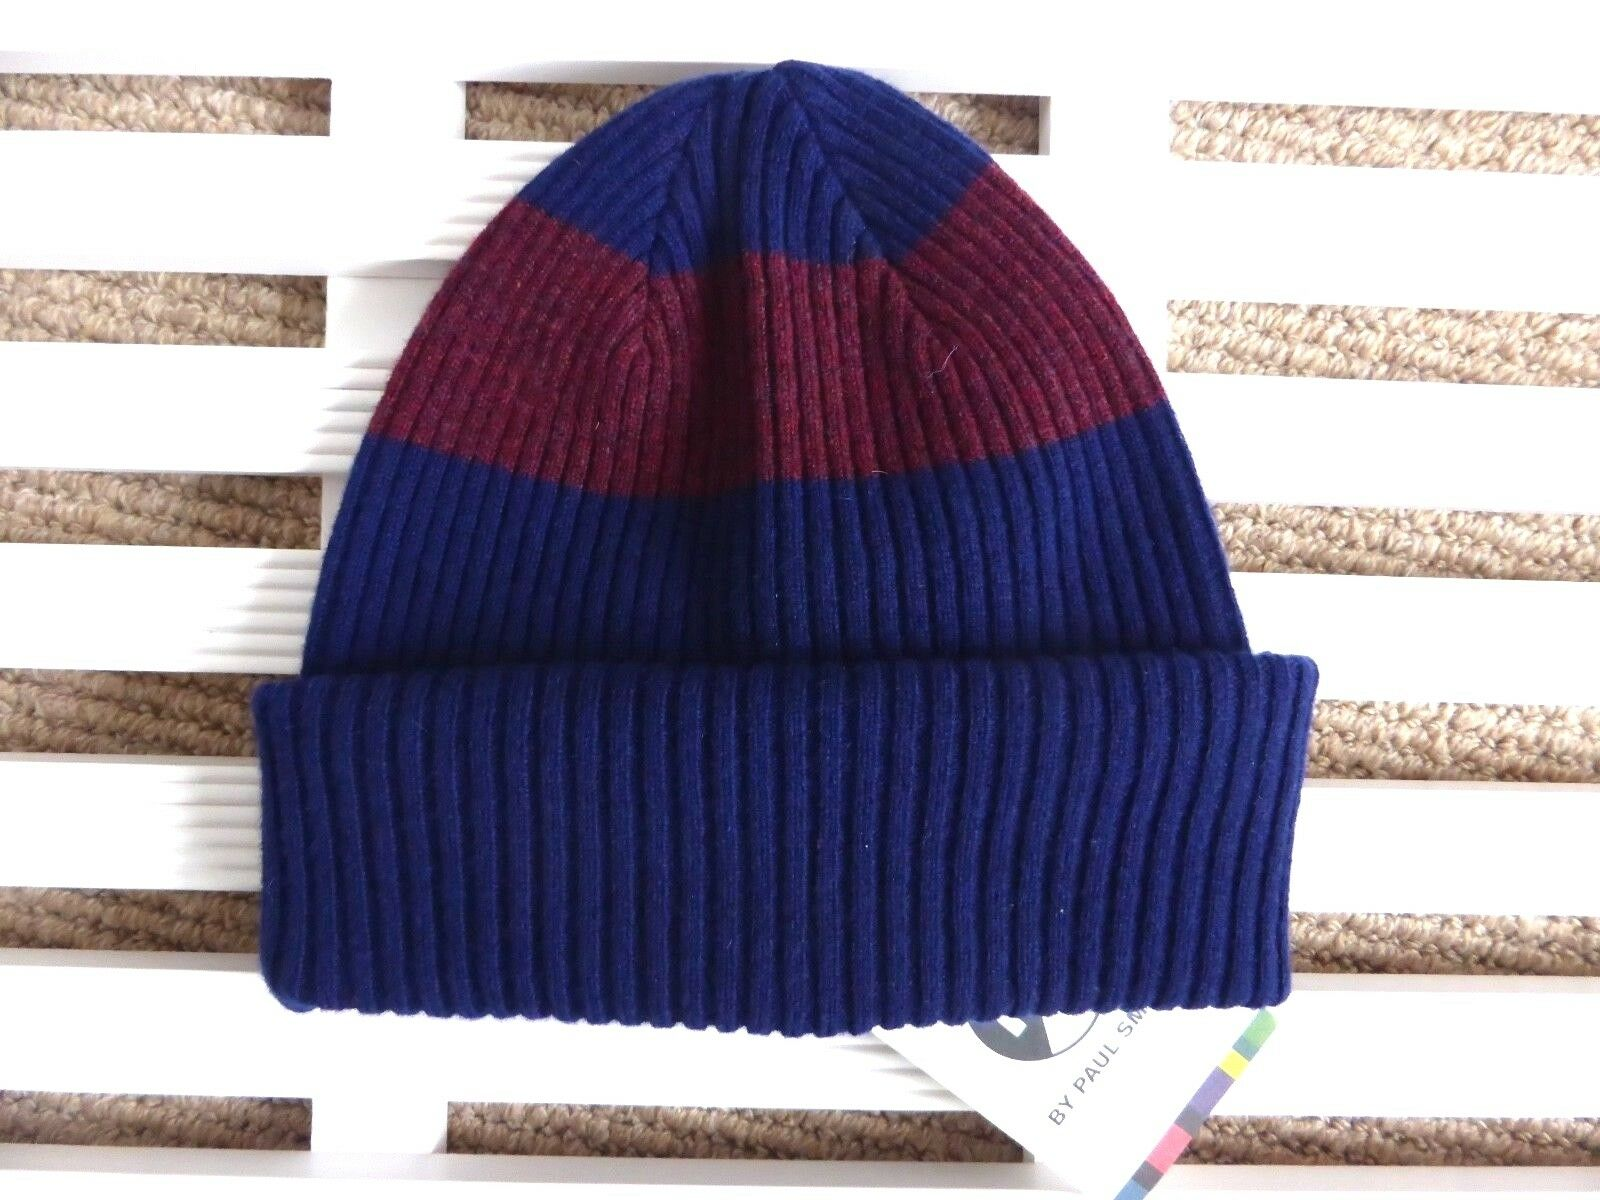 PAUL SMITH Navy 100% Lambswool  Ribbed Beanie Hat Toque MADE IN SCOTLAND New Tags  order online